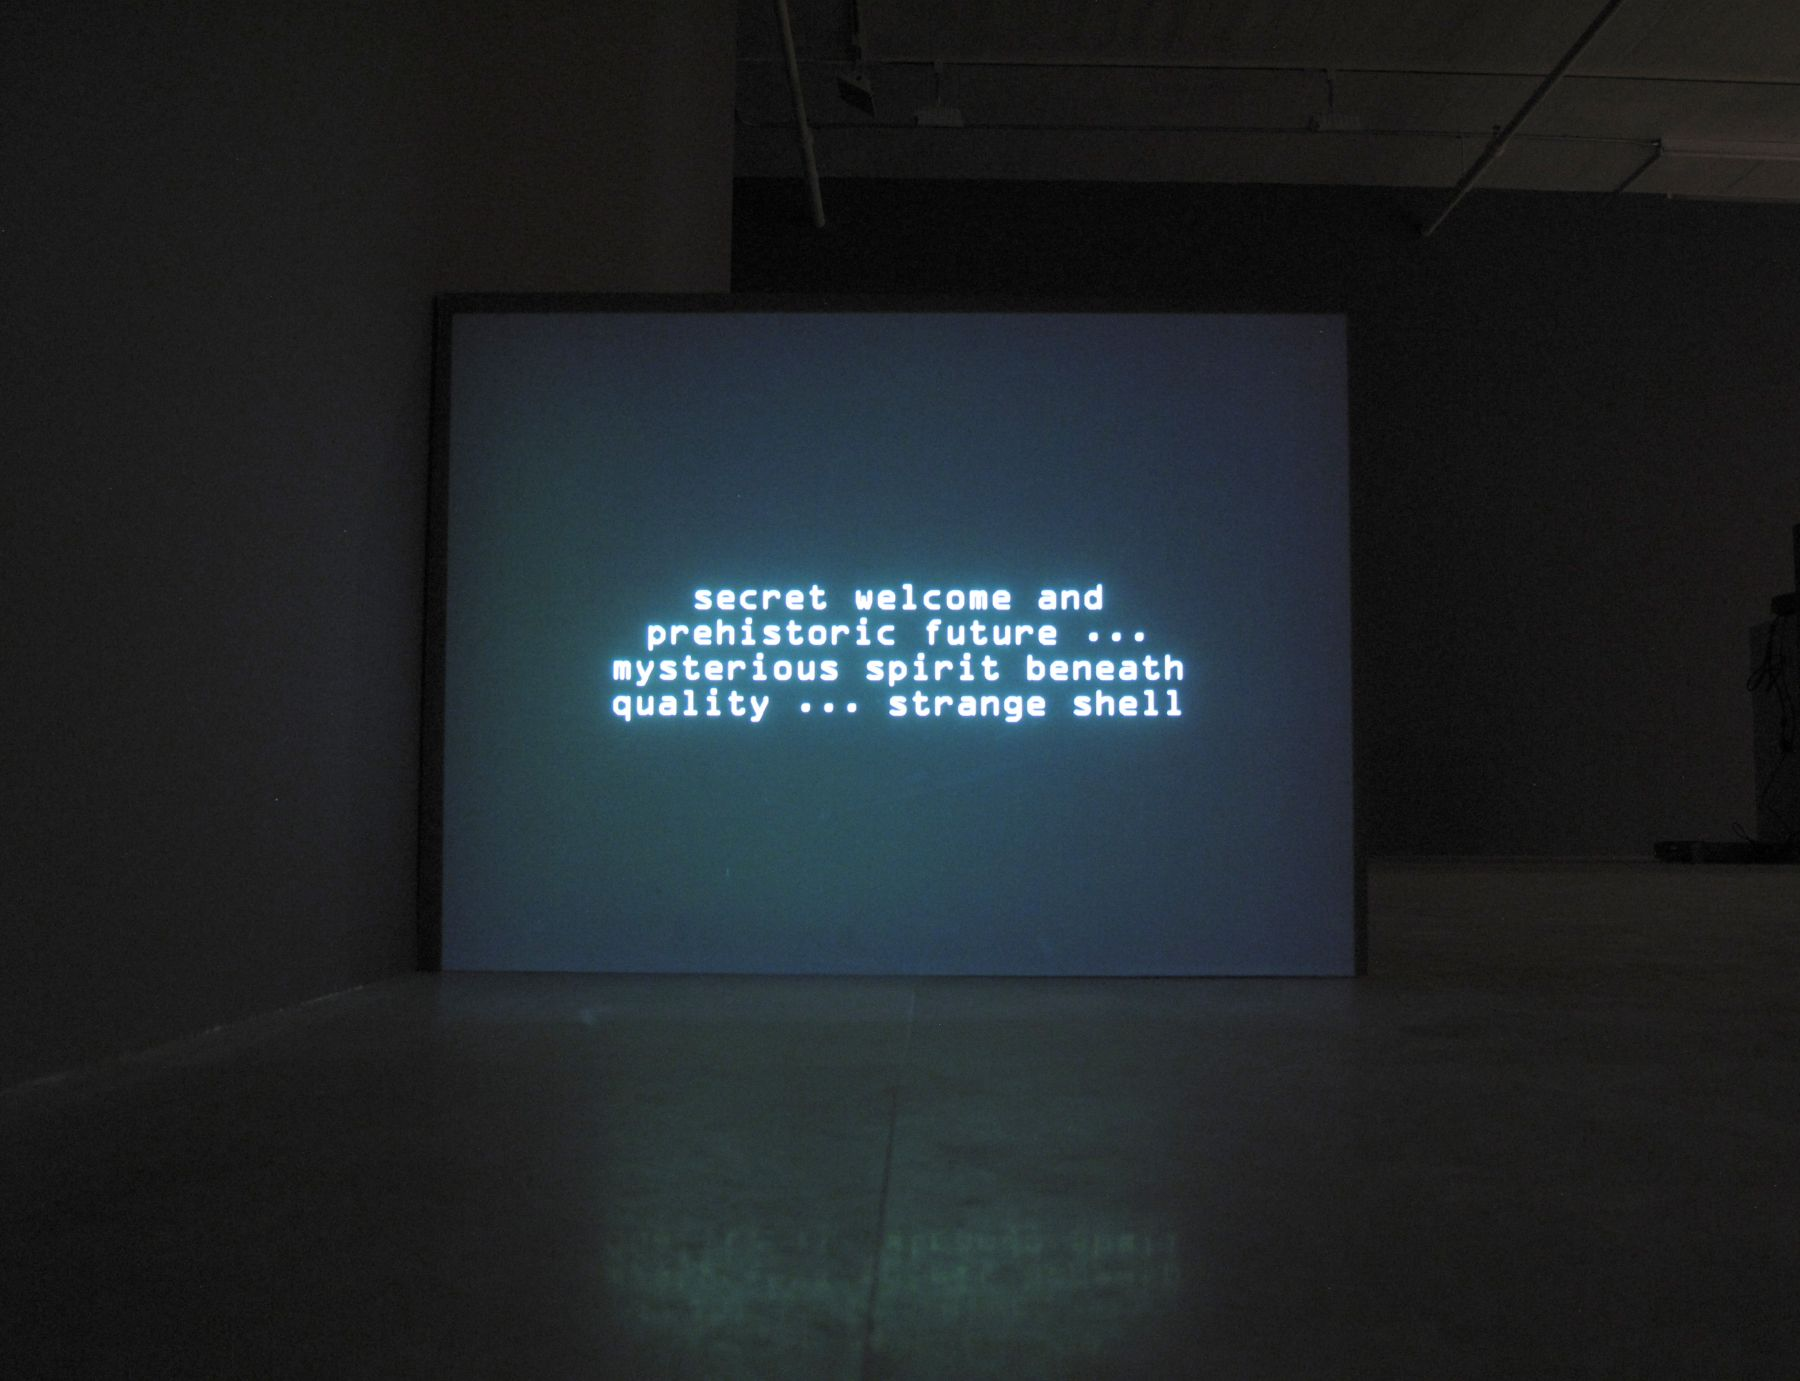 Numerous Incidents of Indefinite Outcome, 2007, Computer generated text, Indefinite duration, Installation view, Greene Naftali, New York, 2010